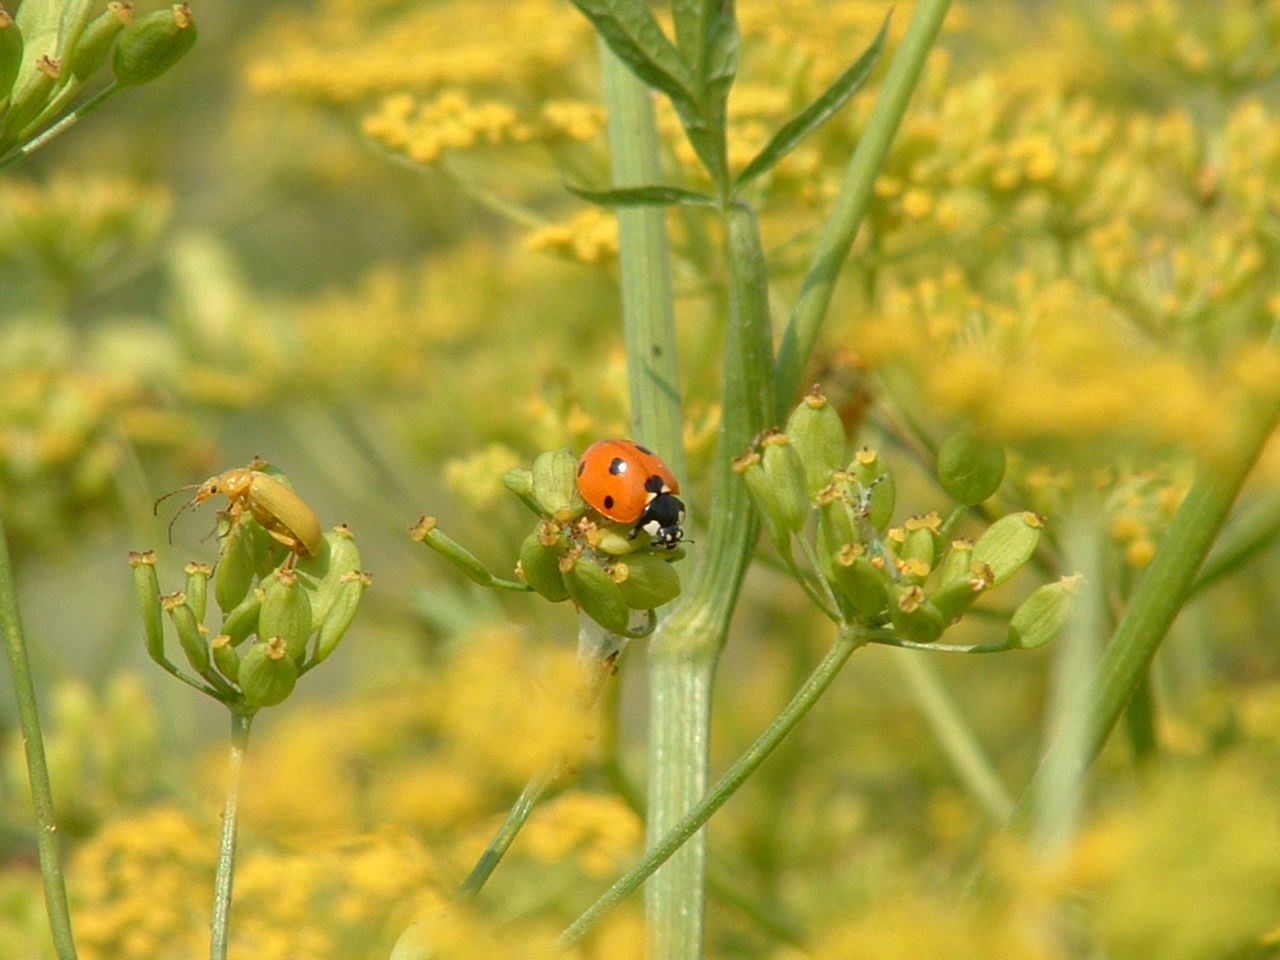 ladybeetle Animal Themes Animal Wildlife Animals In The Wild Beauty In Nature Close-up Day Flower Flower Head Focus On Foreground Fragility Growth Insect Ladybeetle Ladybug Ladybug Leaf Nature No People One Animal Outdoors Plant Tiny